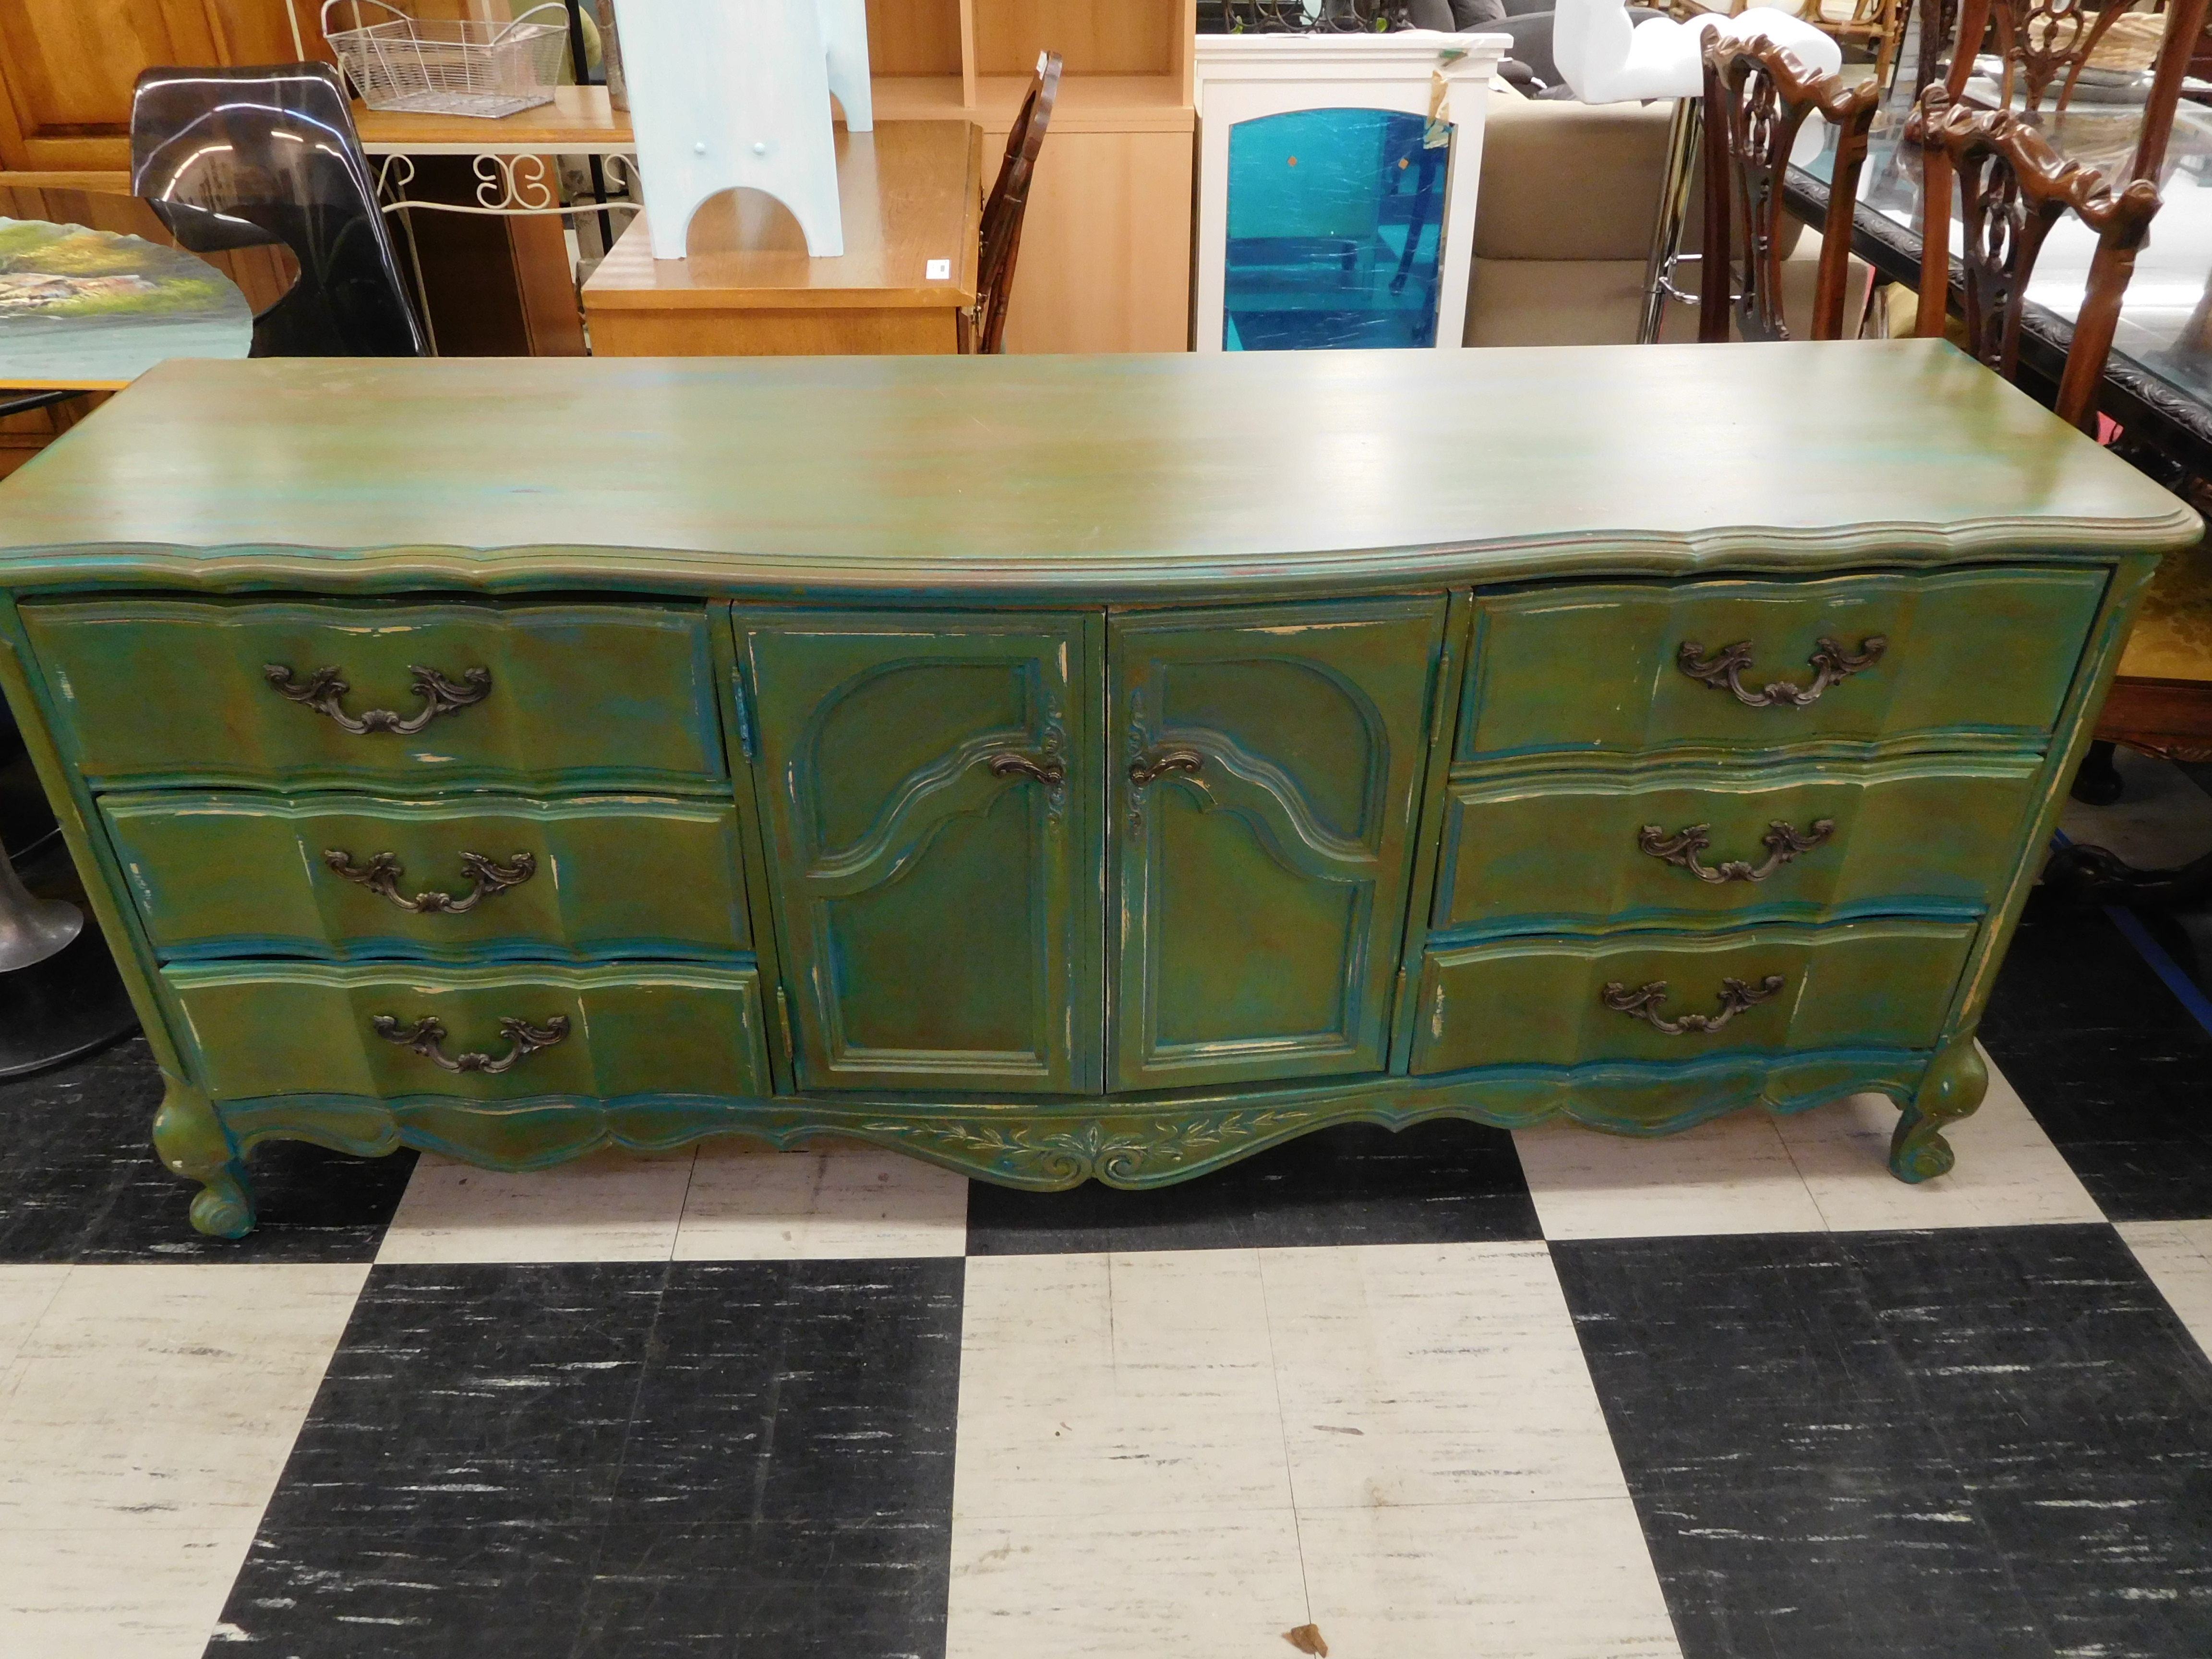 Shabby Chic French Provincial Dresser by American of Martinsville